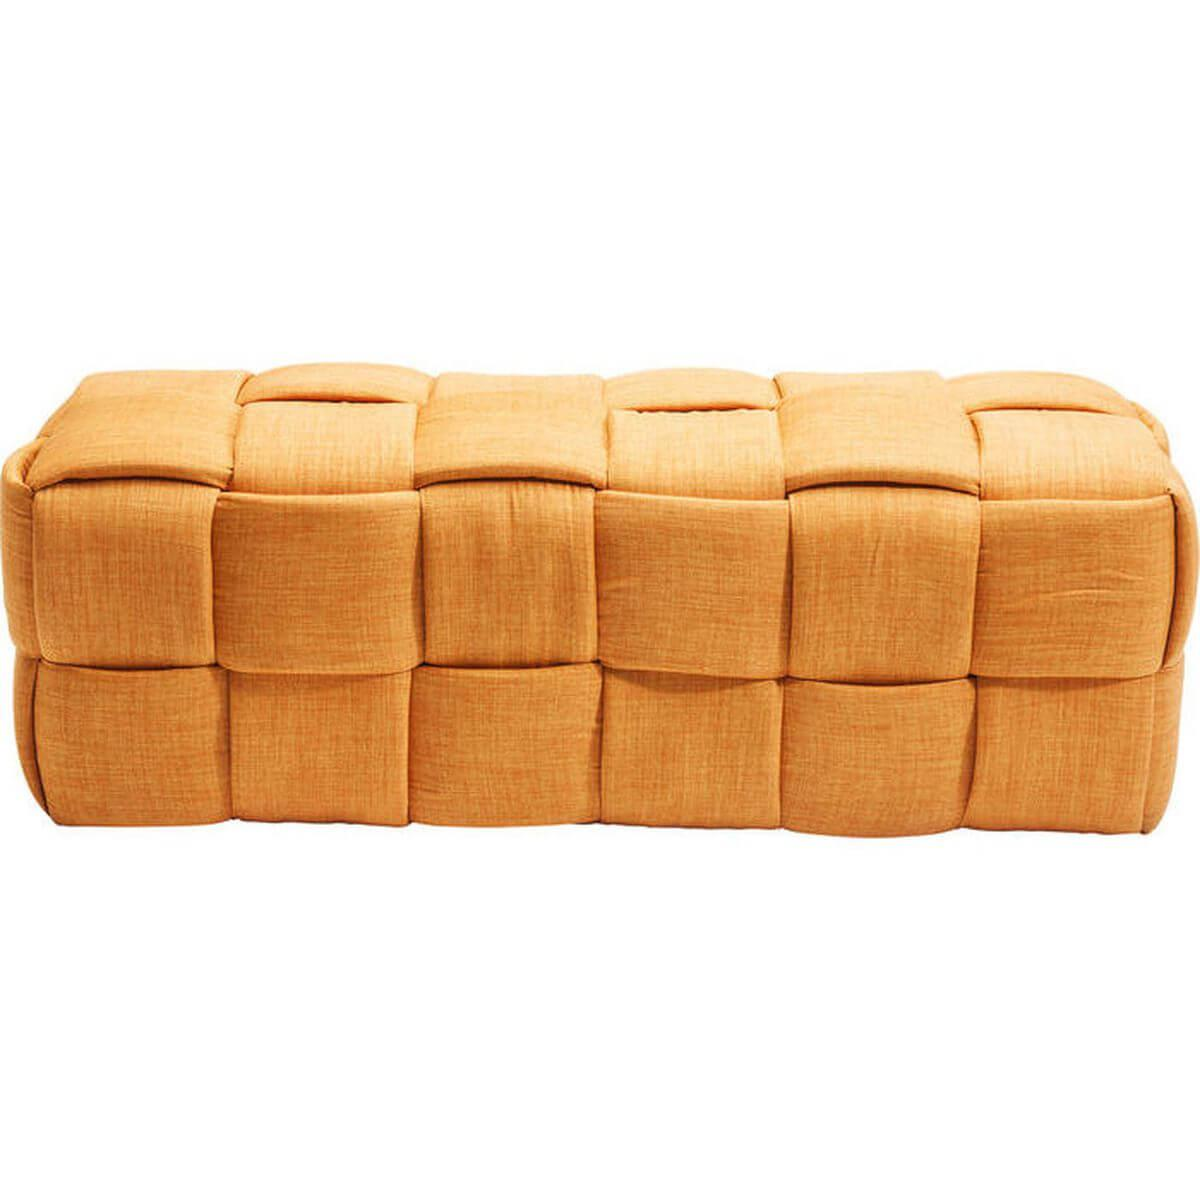 Banquette WOVEN Kare Design orange